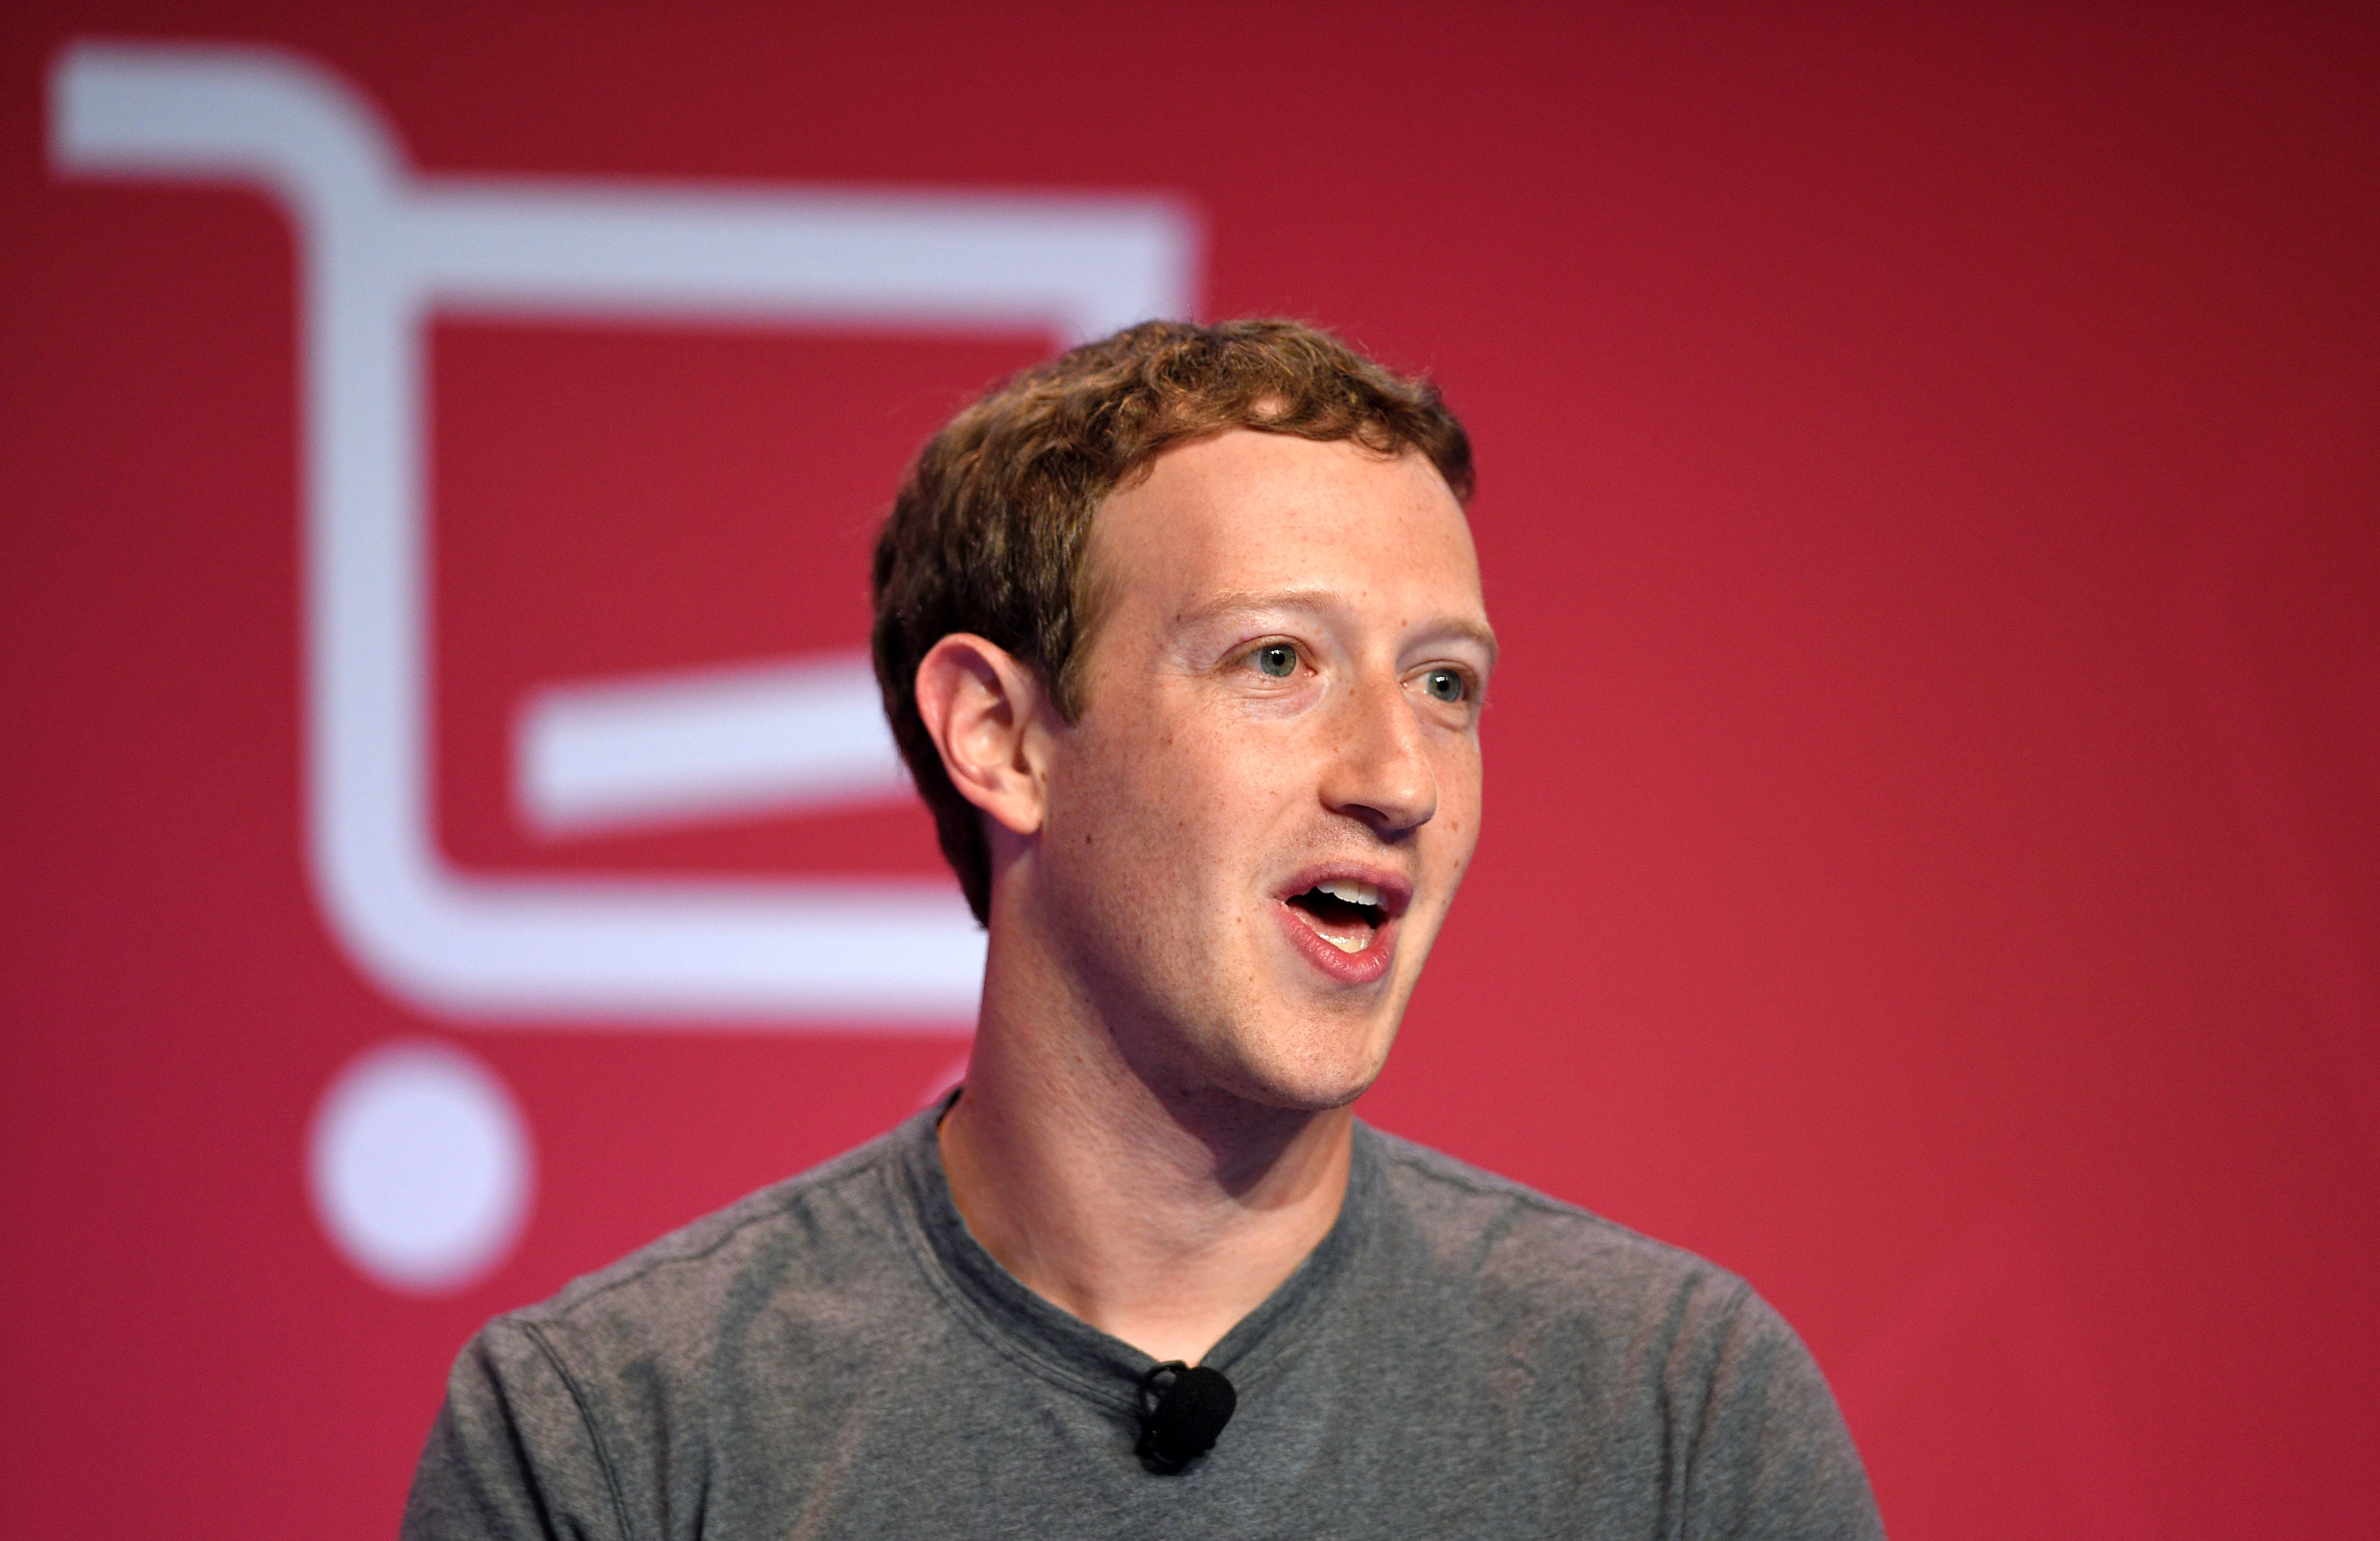 Facebook Chairman, chief executive, and co-founder, Mark Zuckerberg, speaks during a keynote speech at the Mobile World Congress in Barcelona on Feb. 22, 2016.